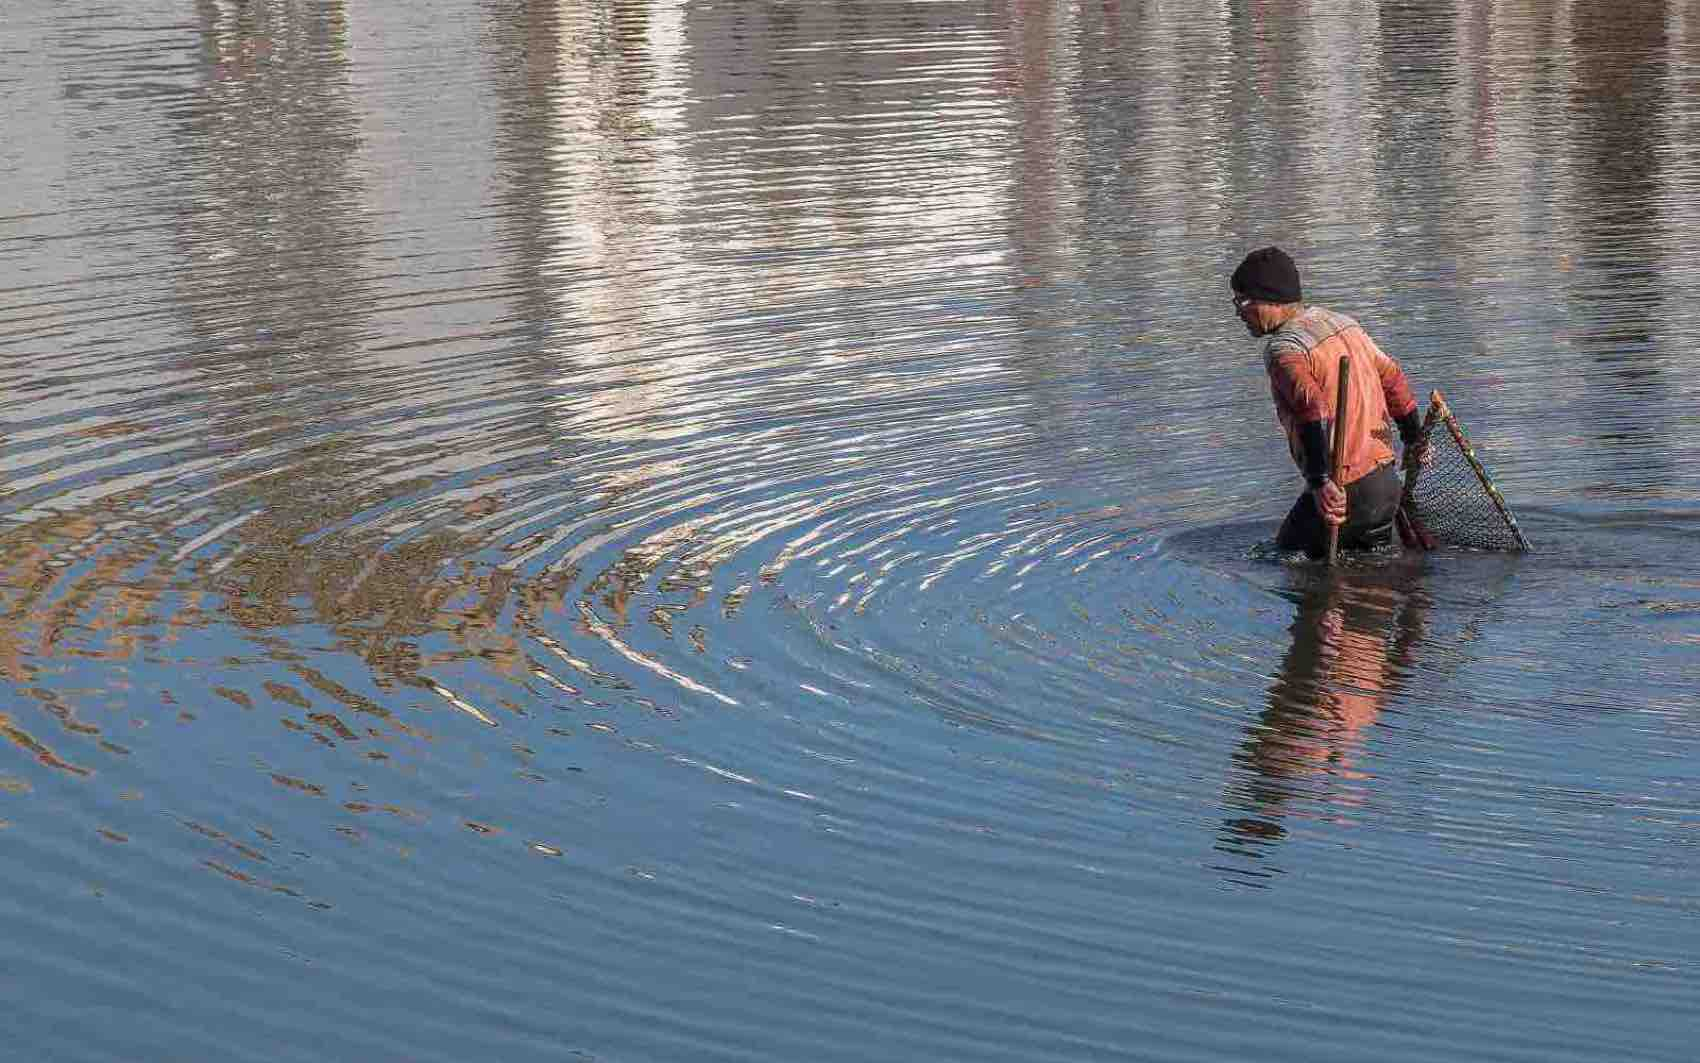 A man searching for seafood in river Gilao in the middle of the town.